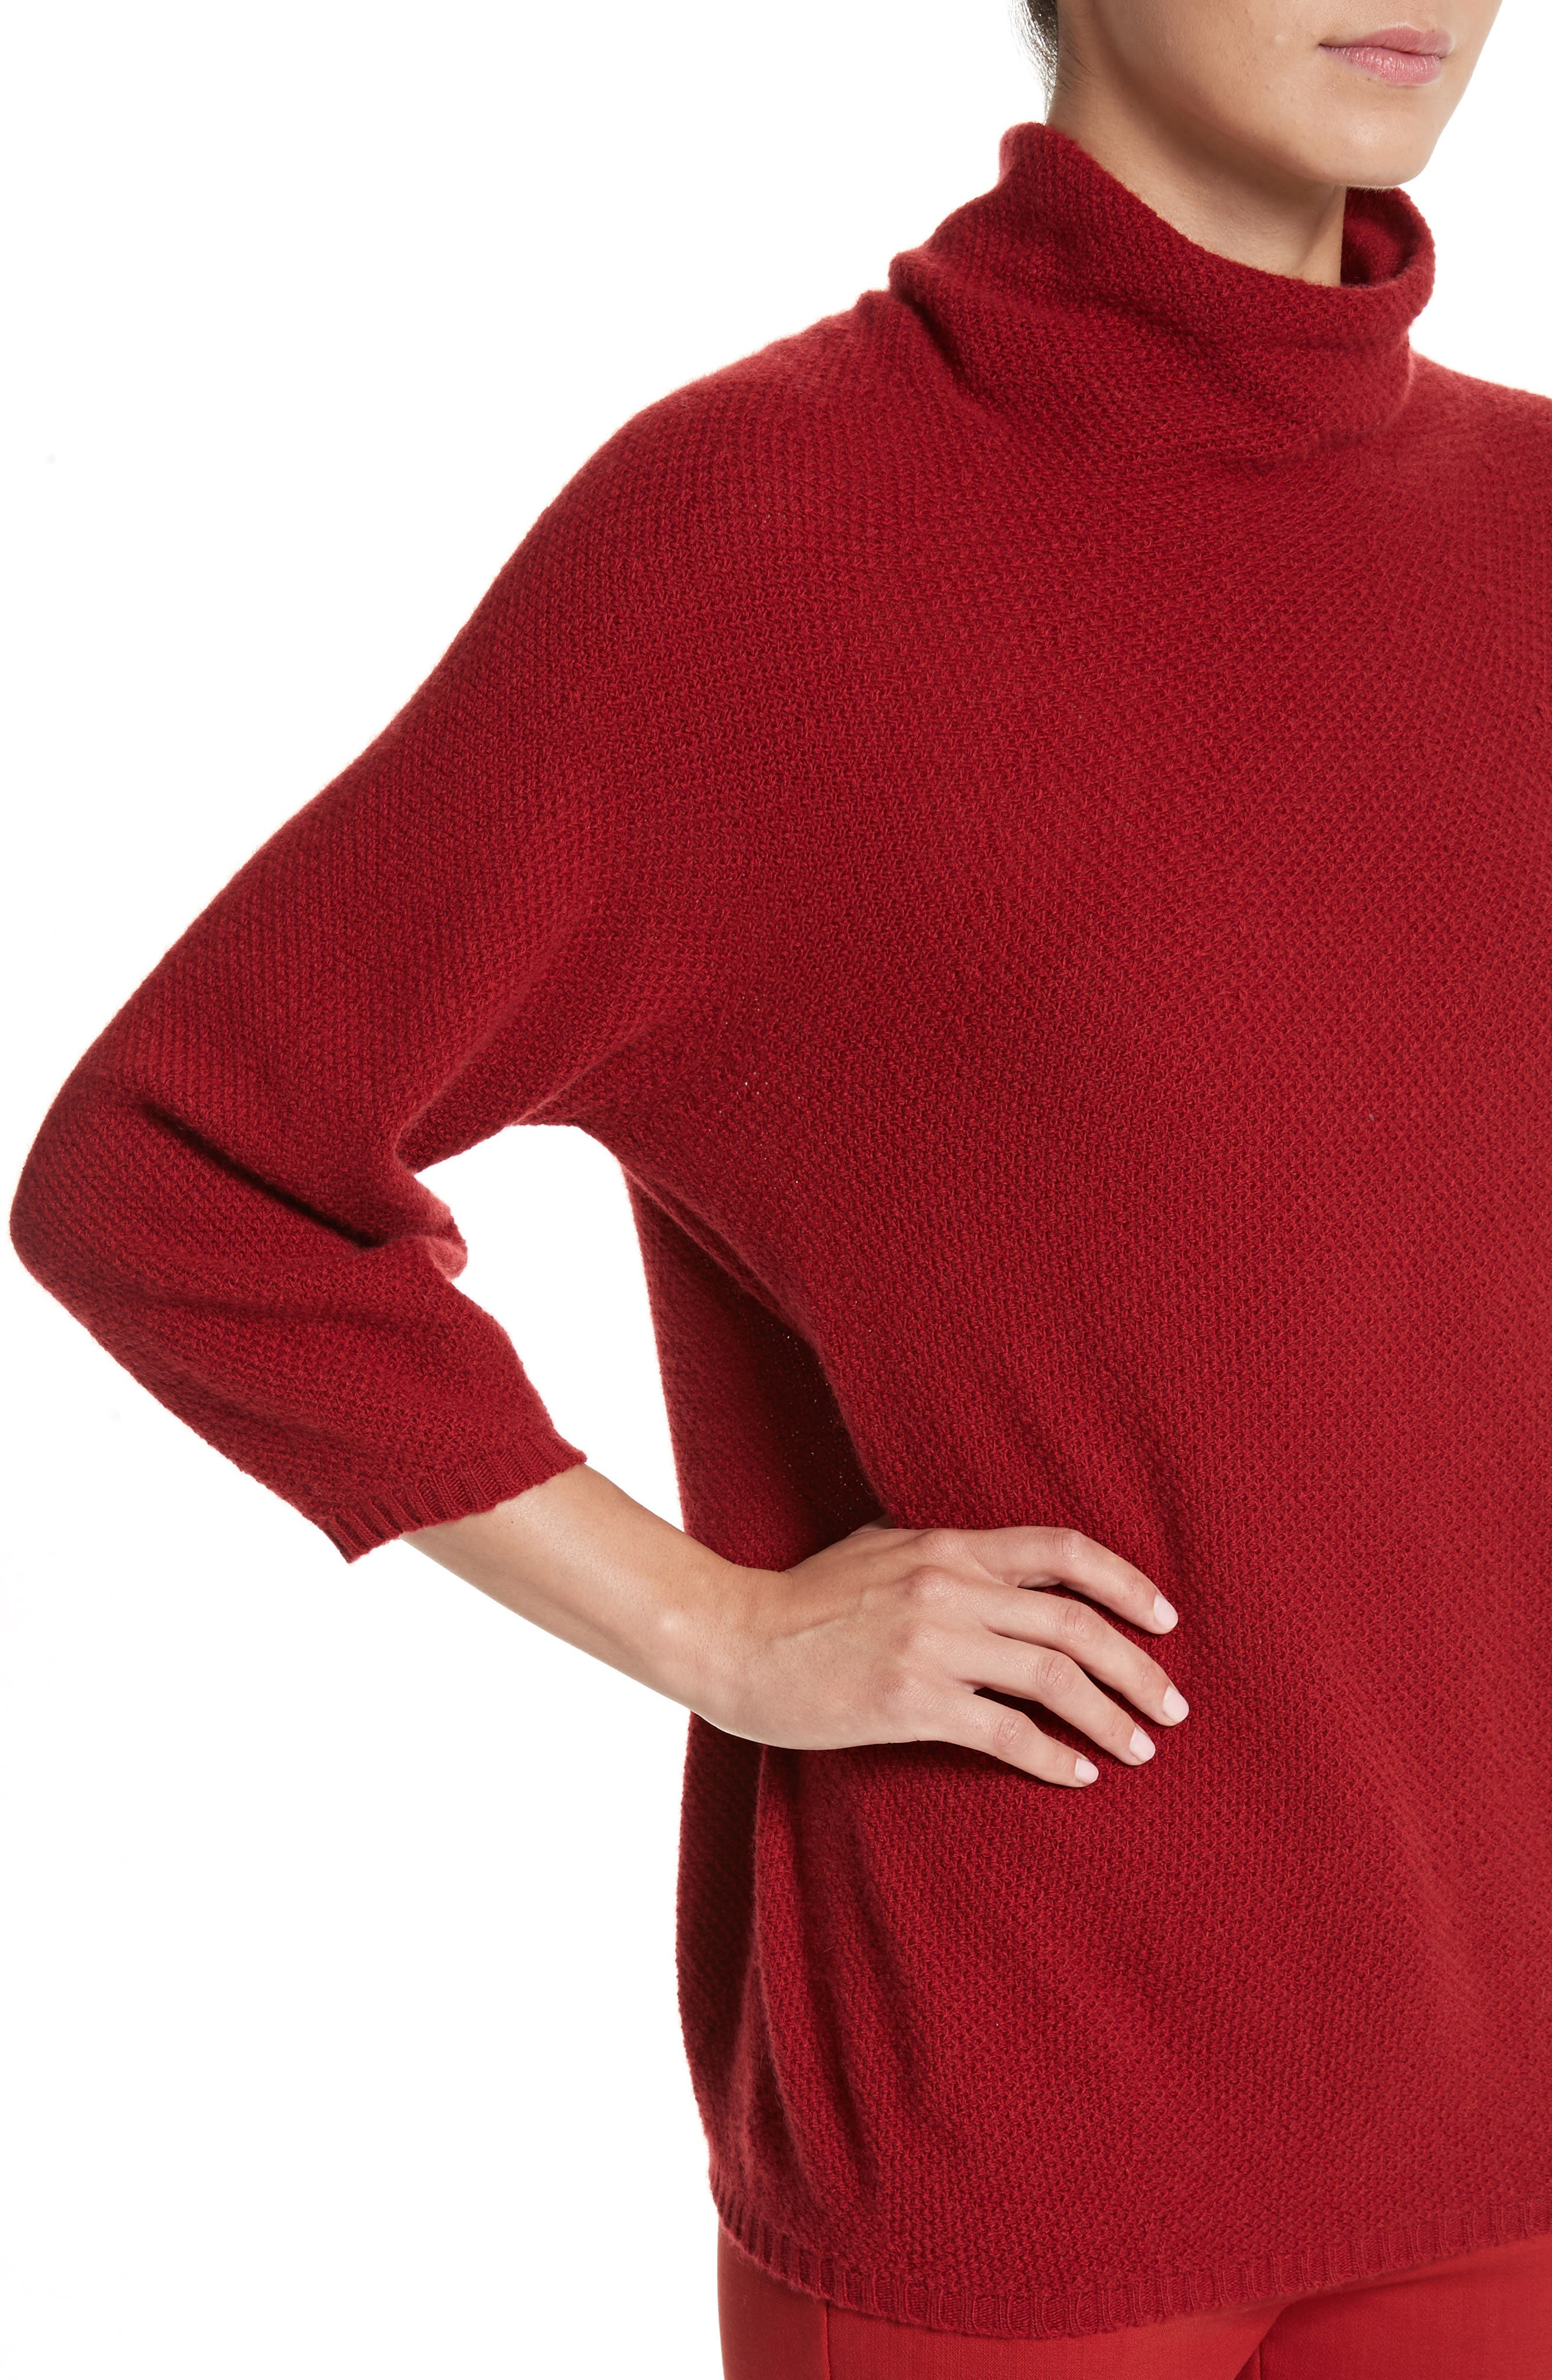 Belgio Wool & Cashmere Sweater,                             Alternate thumbnail 4, color,                             614